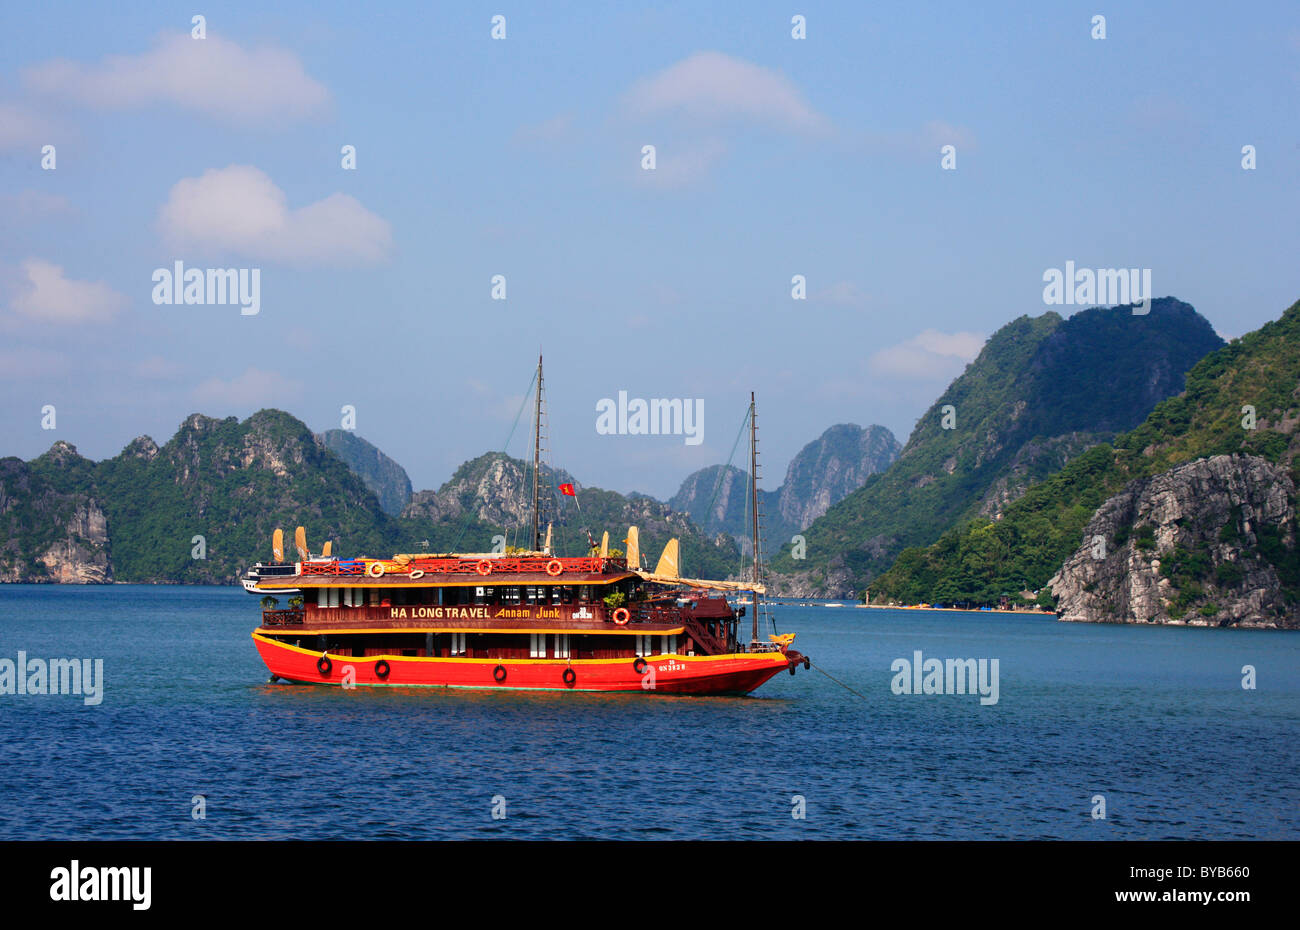 Tourist boat in Halong Bay, Vietnam, Asia - Stock Image